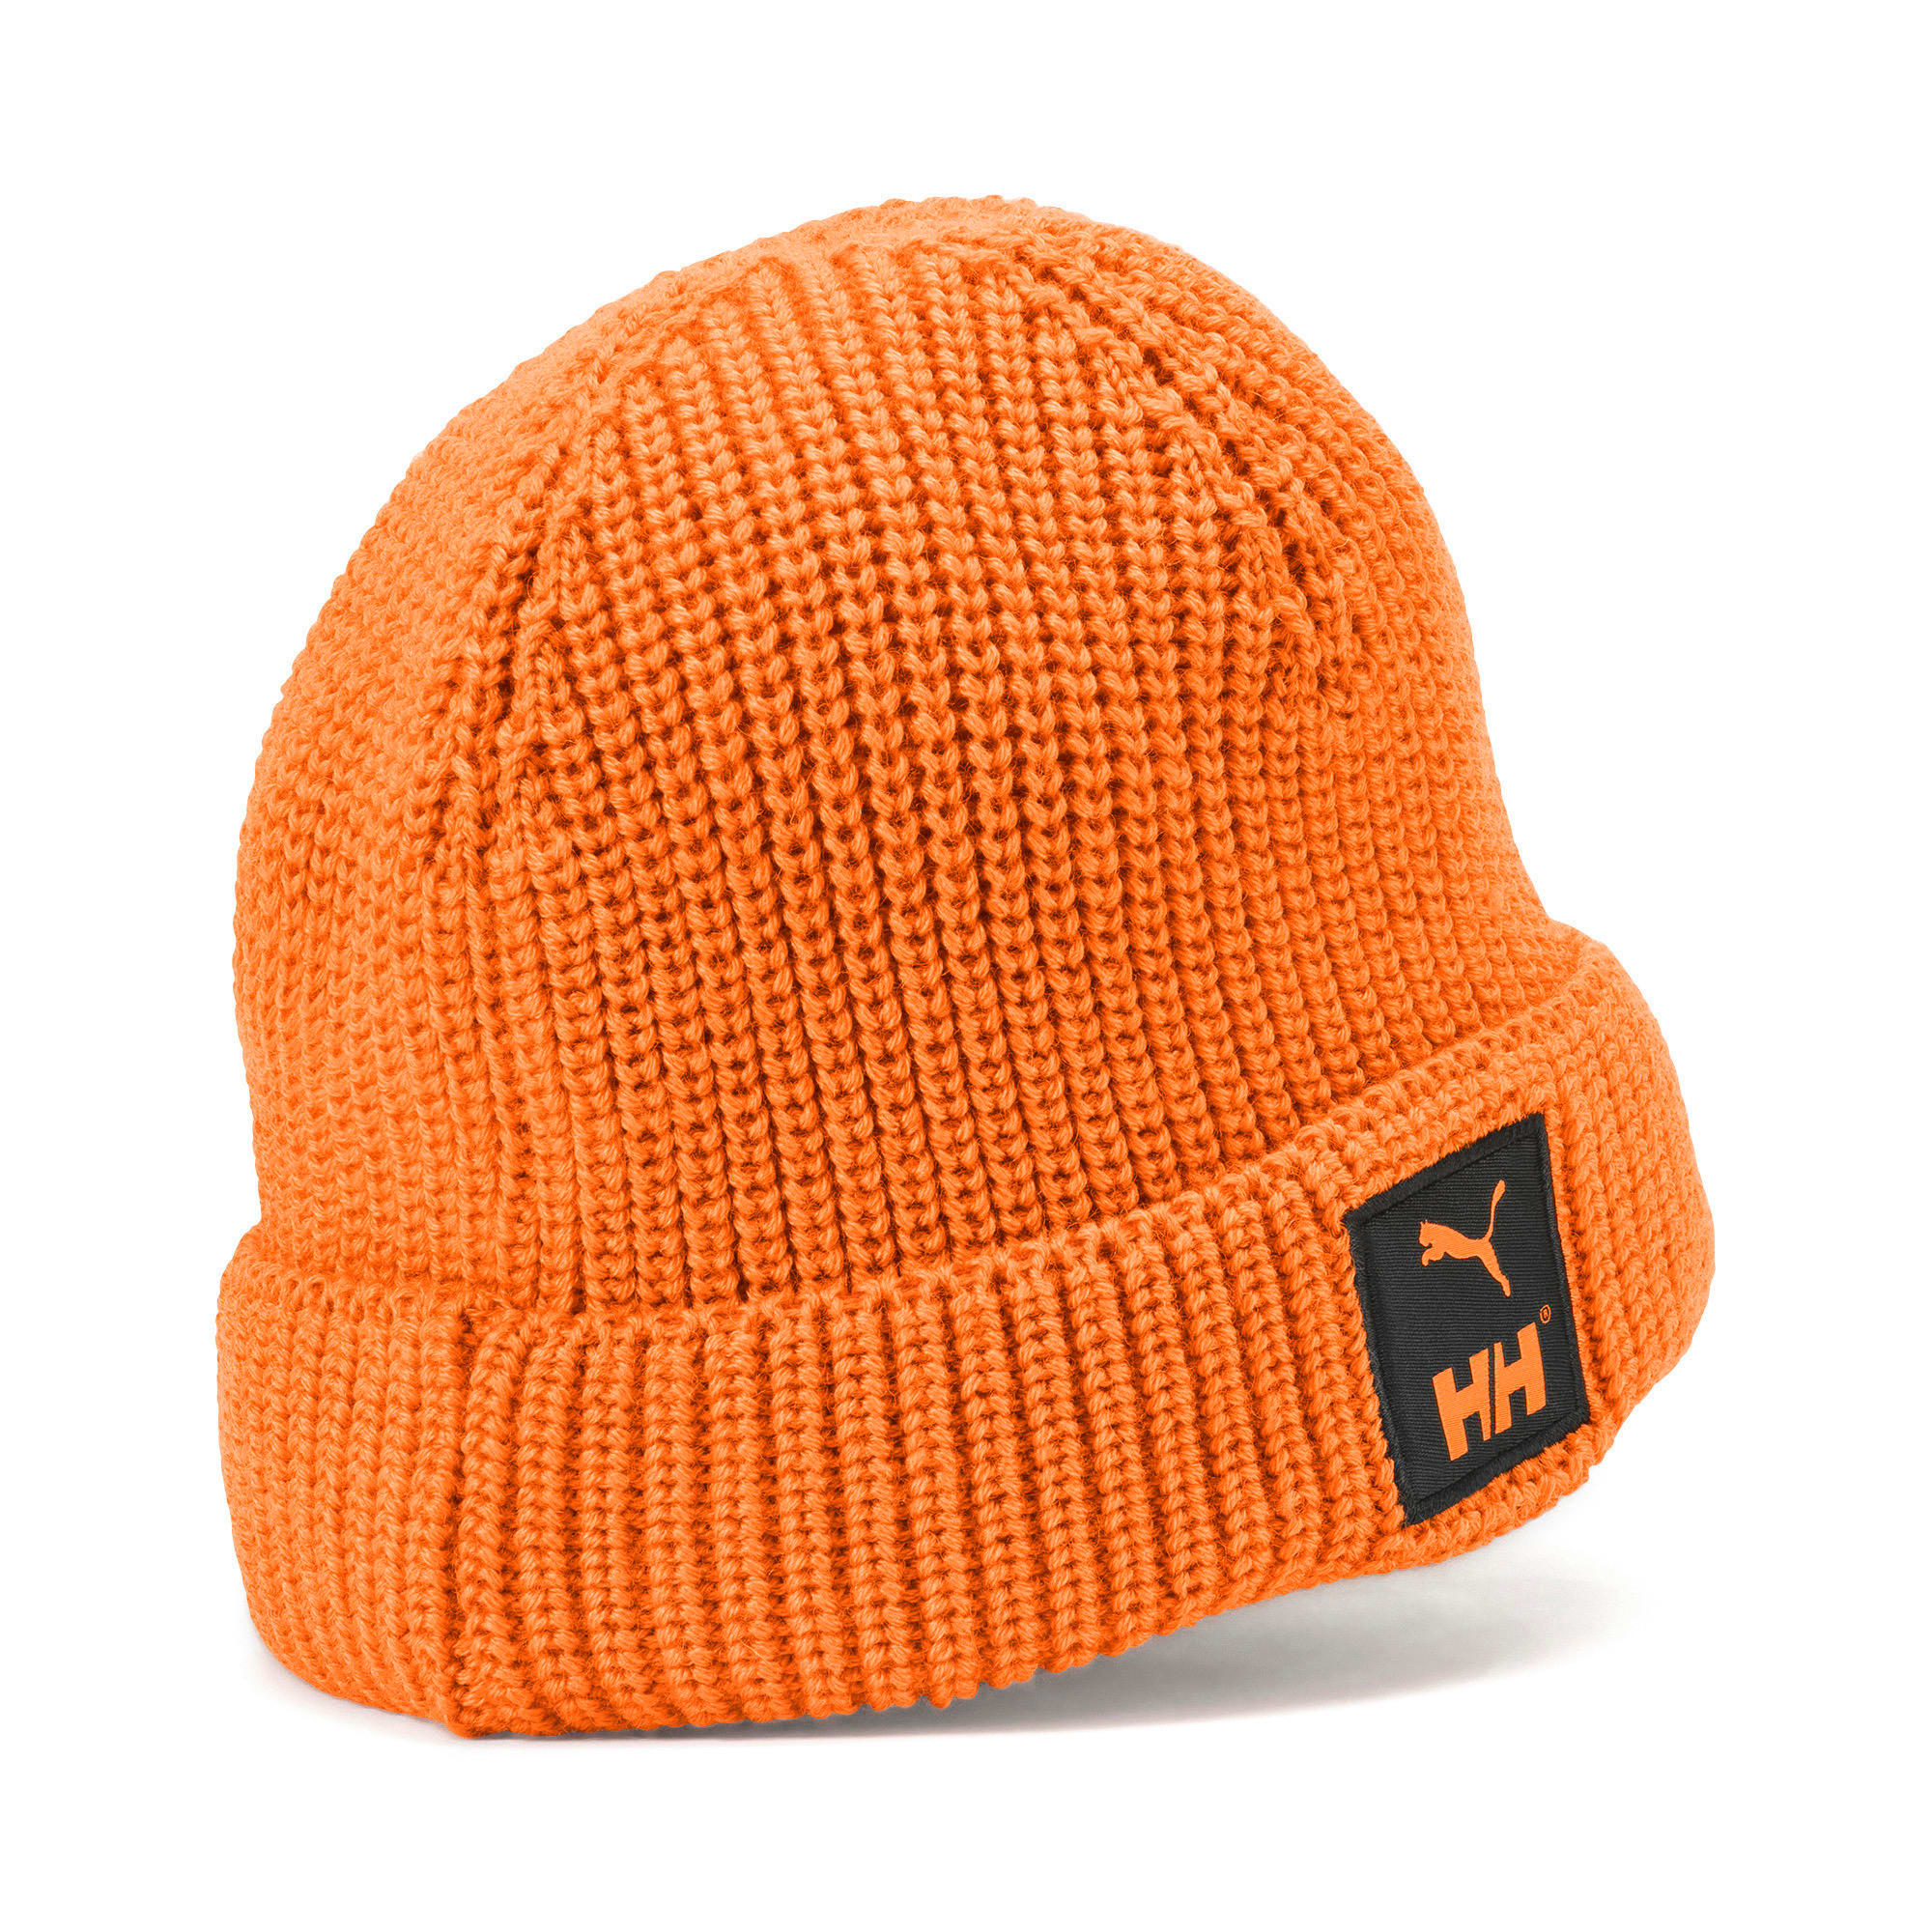 PUMA x HELLY HANSEN Beanie, Puma Black-Orange Popsicle, large